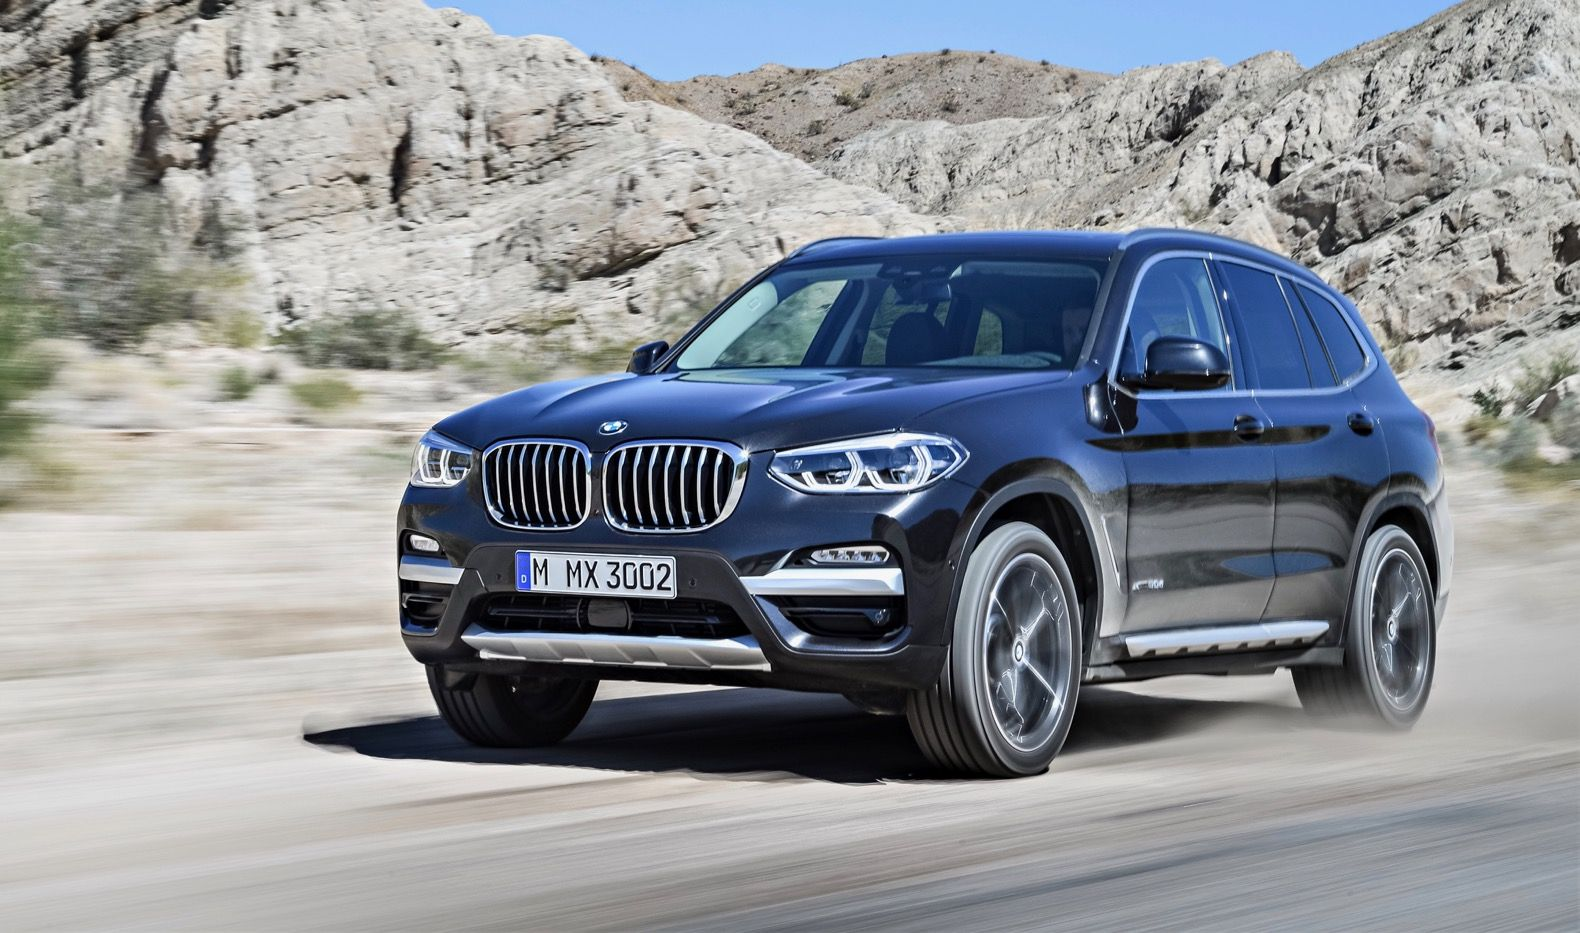 Bmw X3 Plug In Hybrid Coming Next Year Bmw X3 Bmw Bmw E46 Sedan